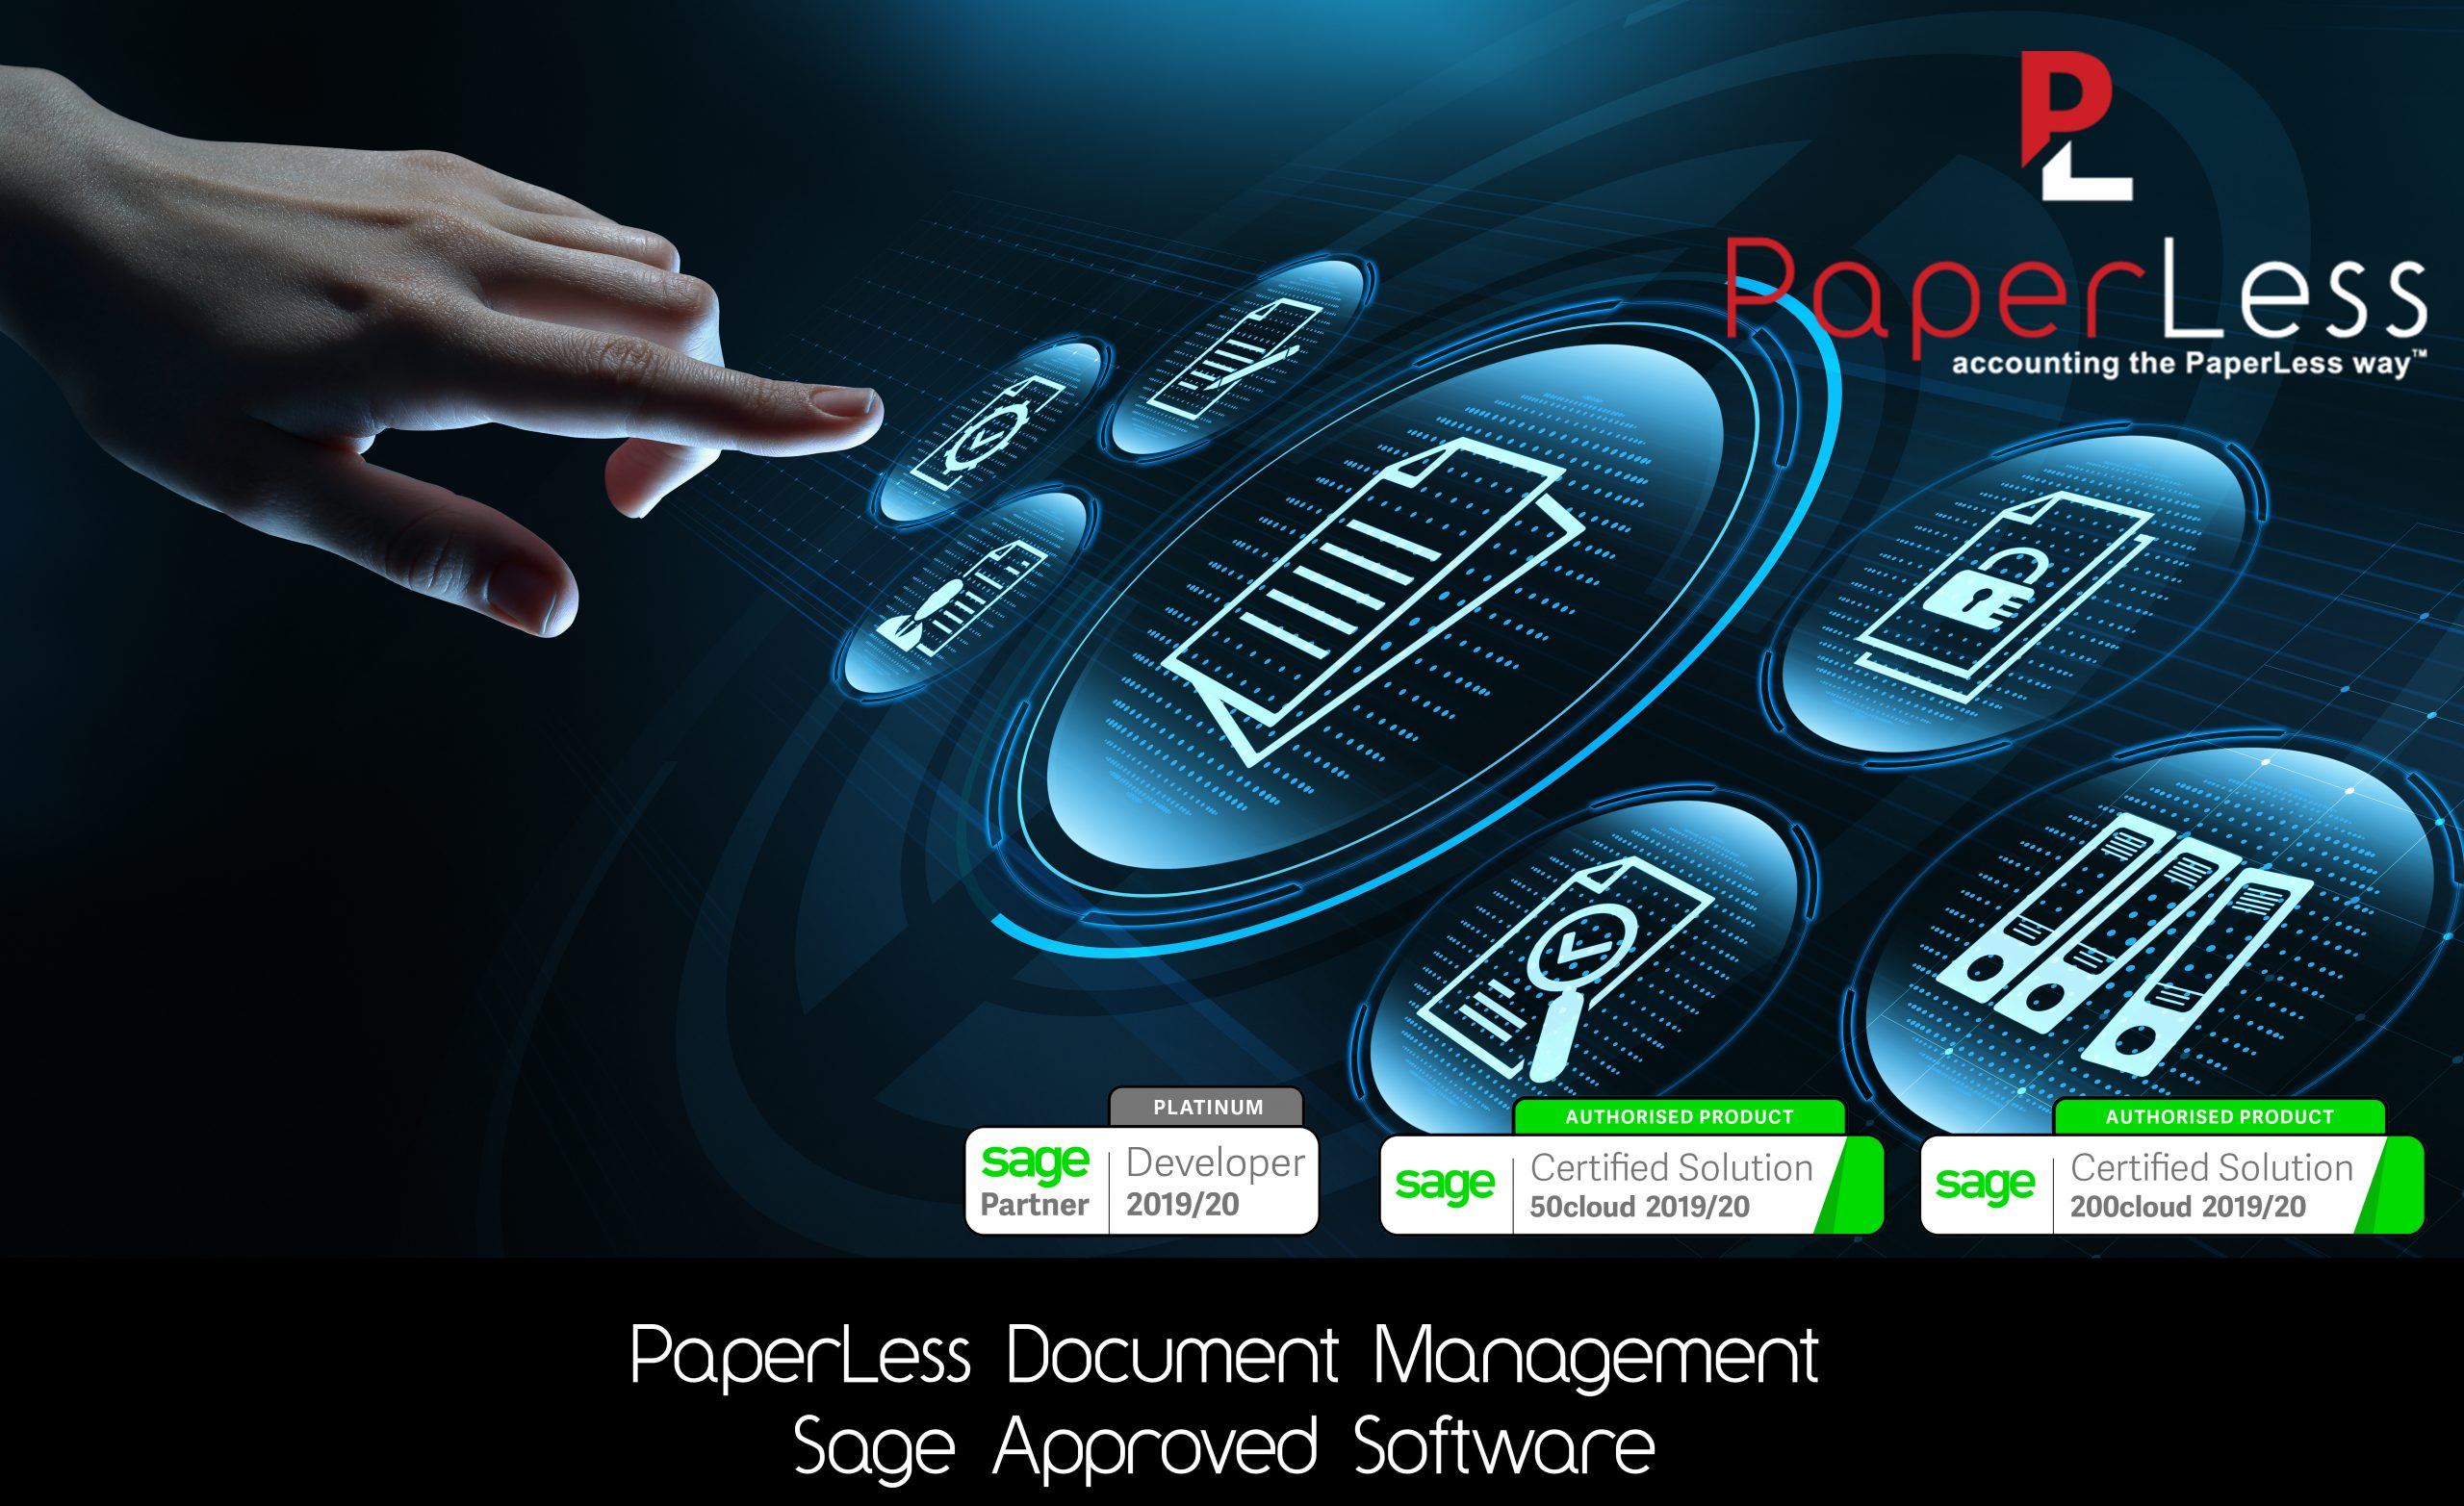 Click here to learn more about PaperLess Document Management